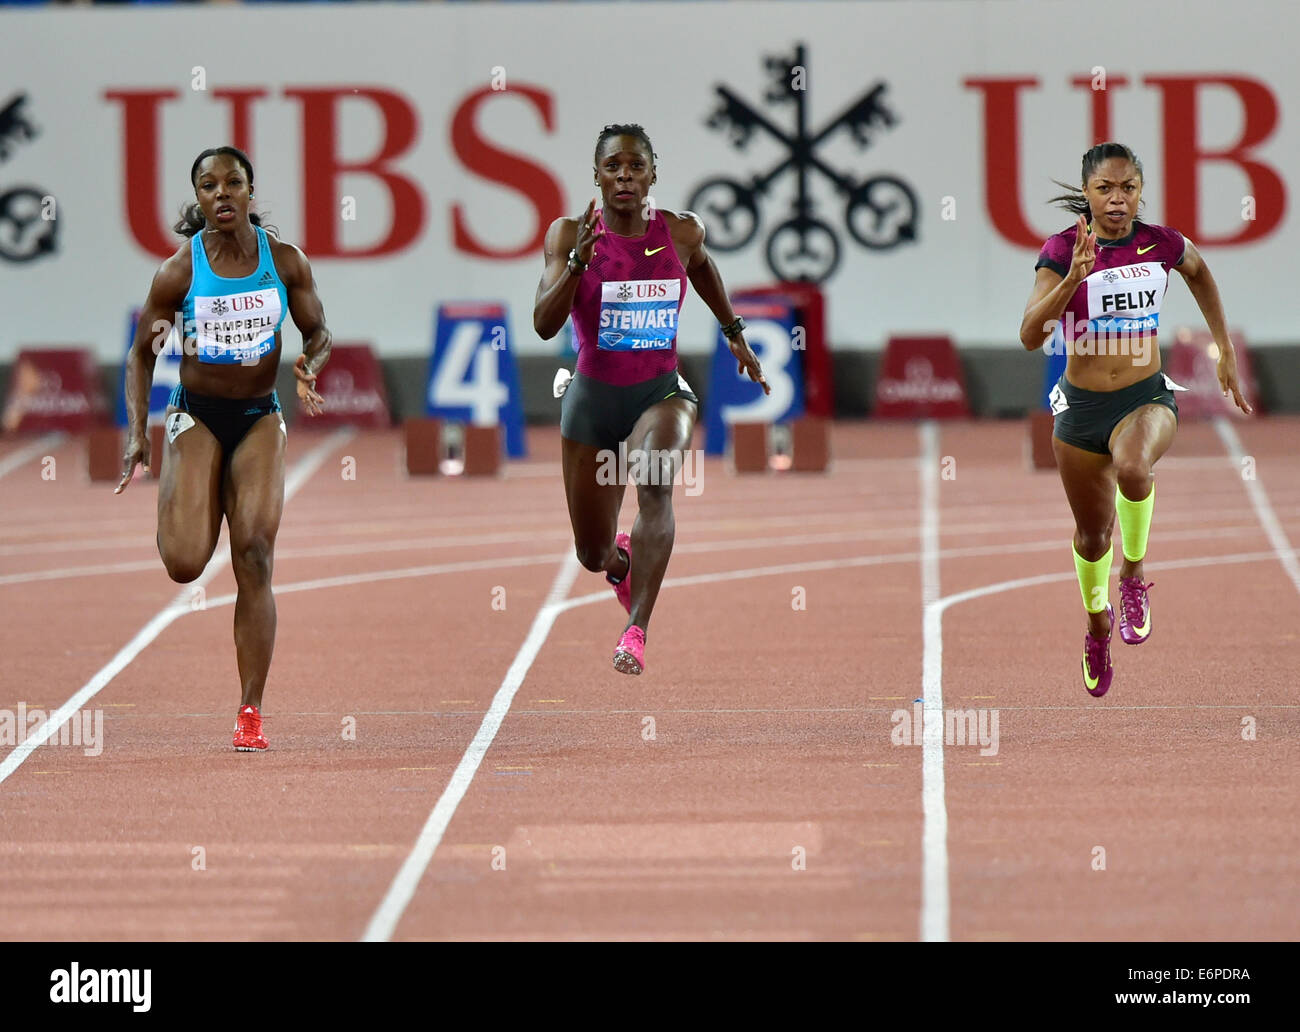 Zurich, Switzerland. 28th Aug, 2014. Veronica Campbell-Brown (JAM, left) winning the women's 100m at  the IAAF - Stock Image